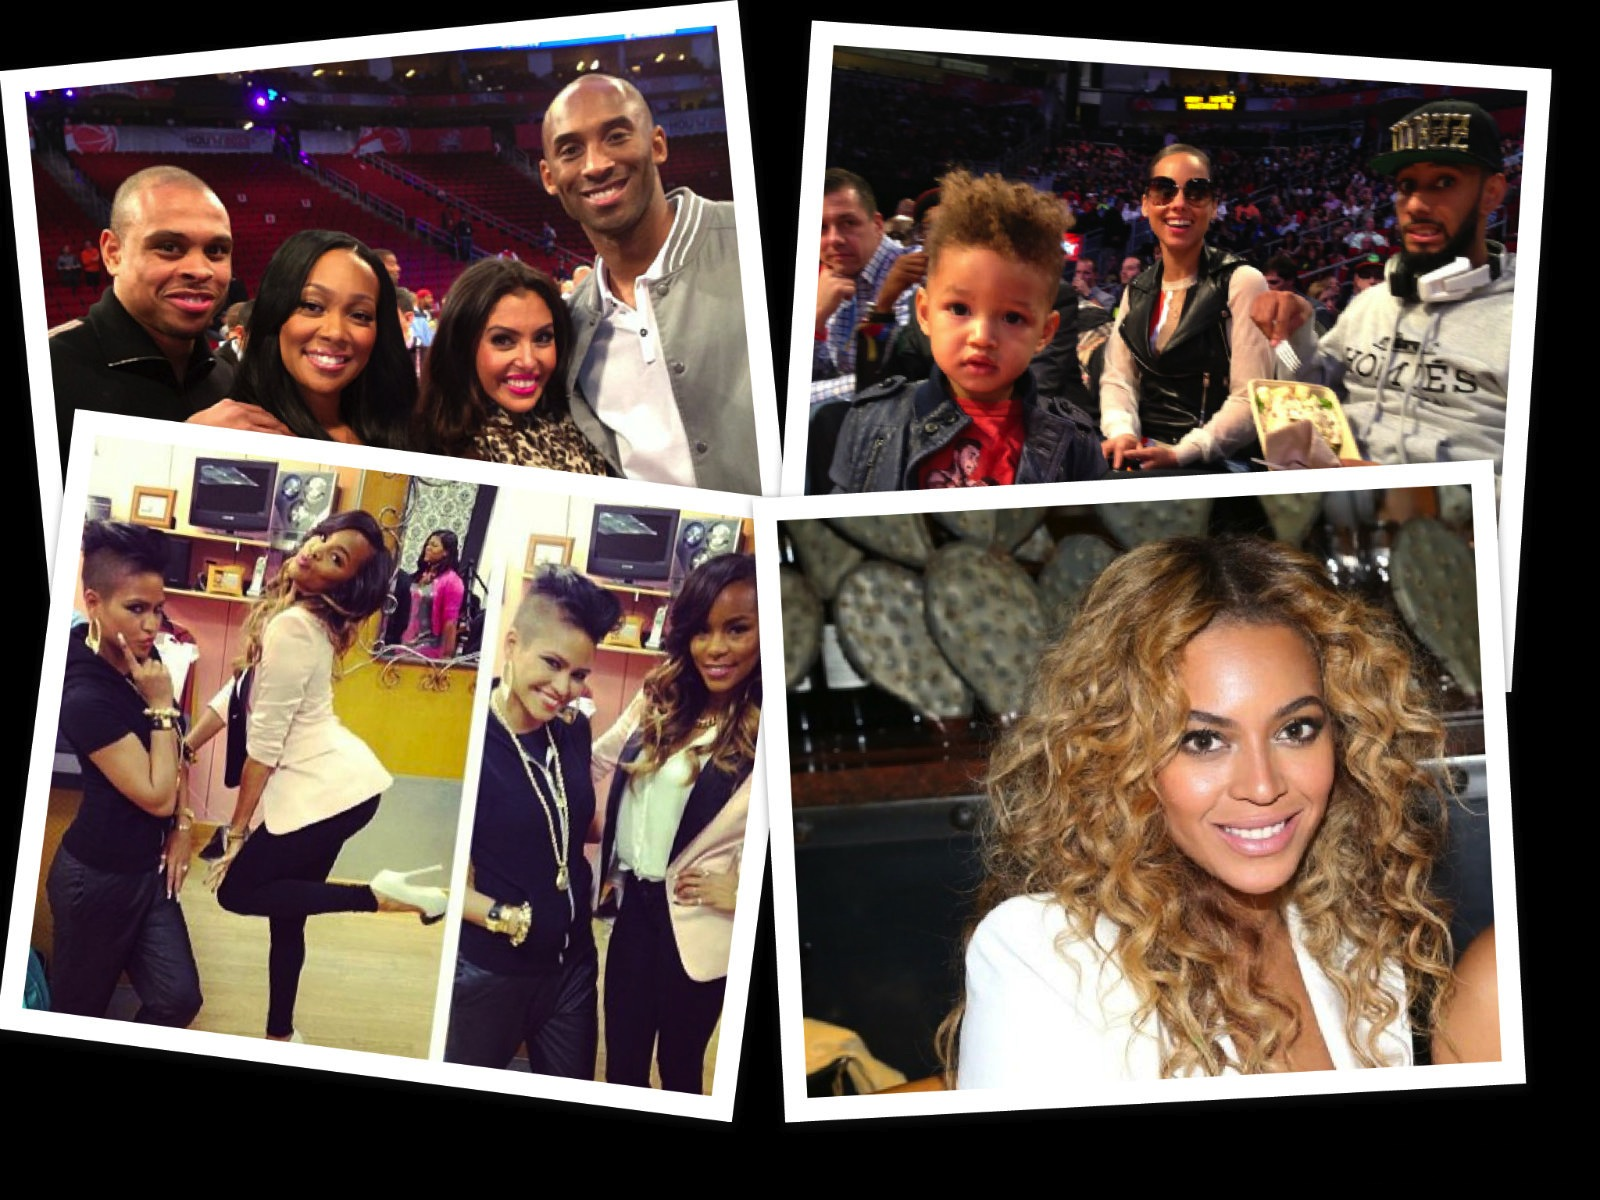 3a012bc5 dcfd 427a 9104 2824e46ce378wallpaper1 Hot Shots:  Beyonce, Alicia Keys, Letoya Luckett, Monica, and More Make Rounds For NBA All Star Weekend